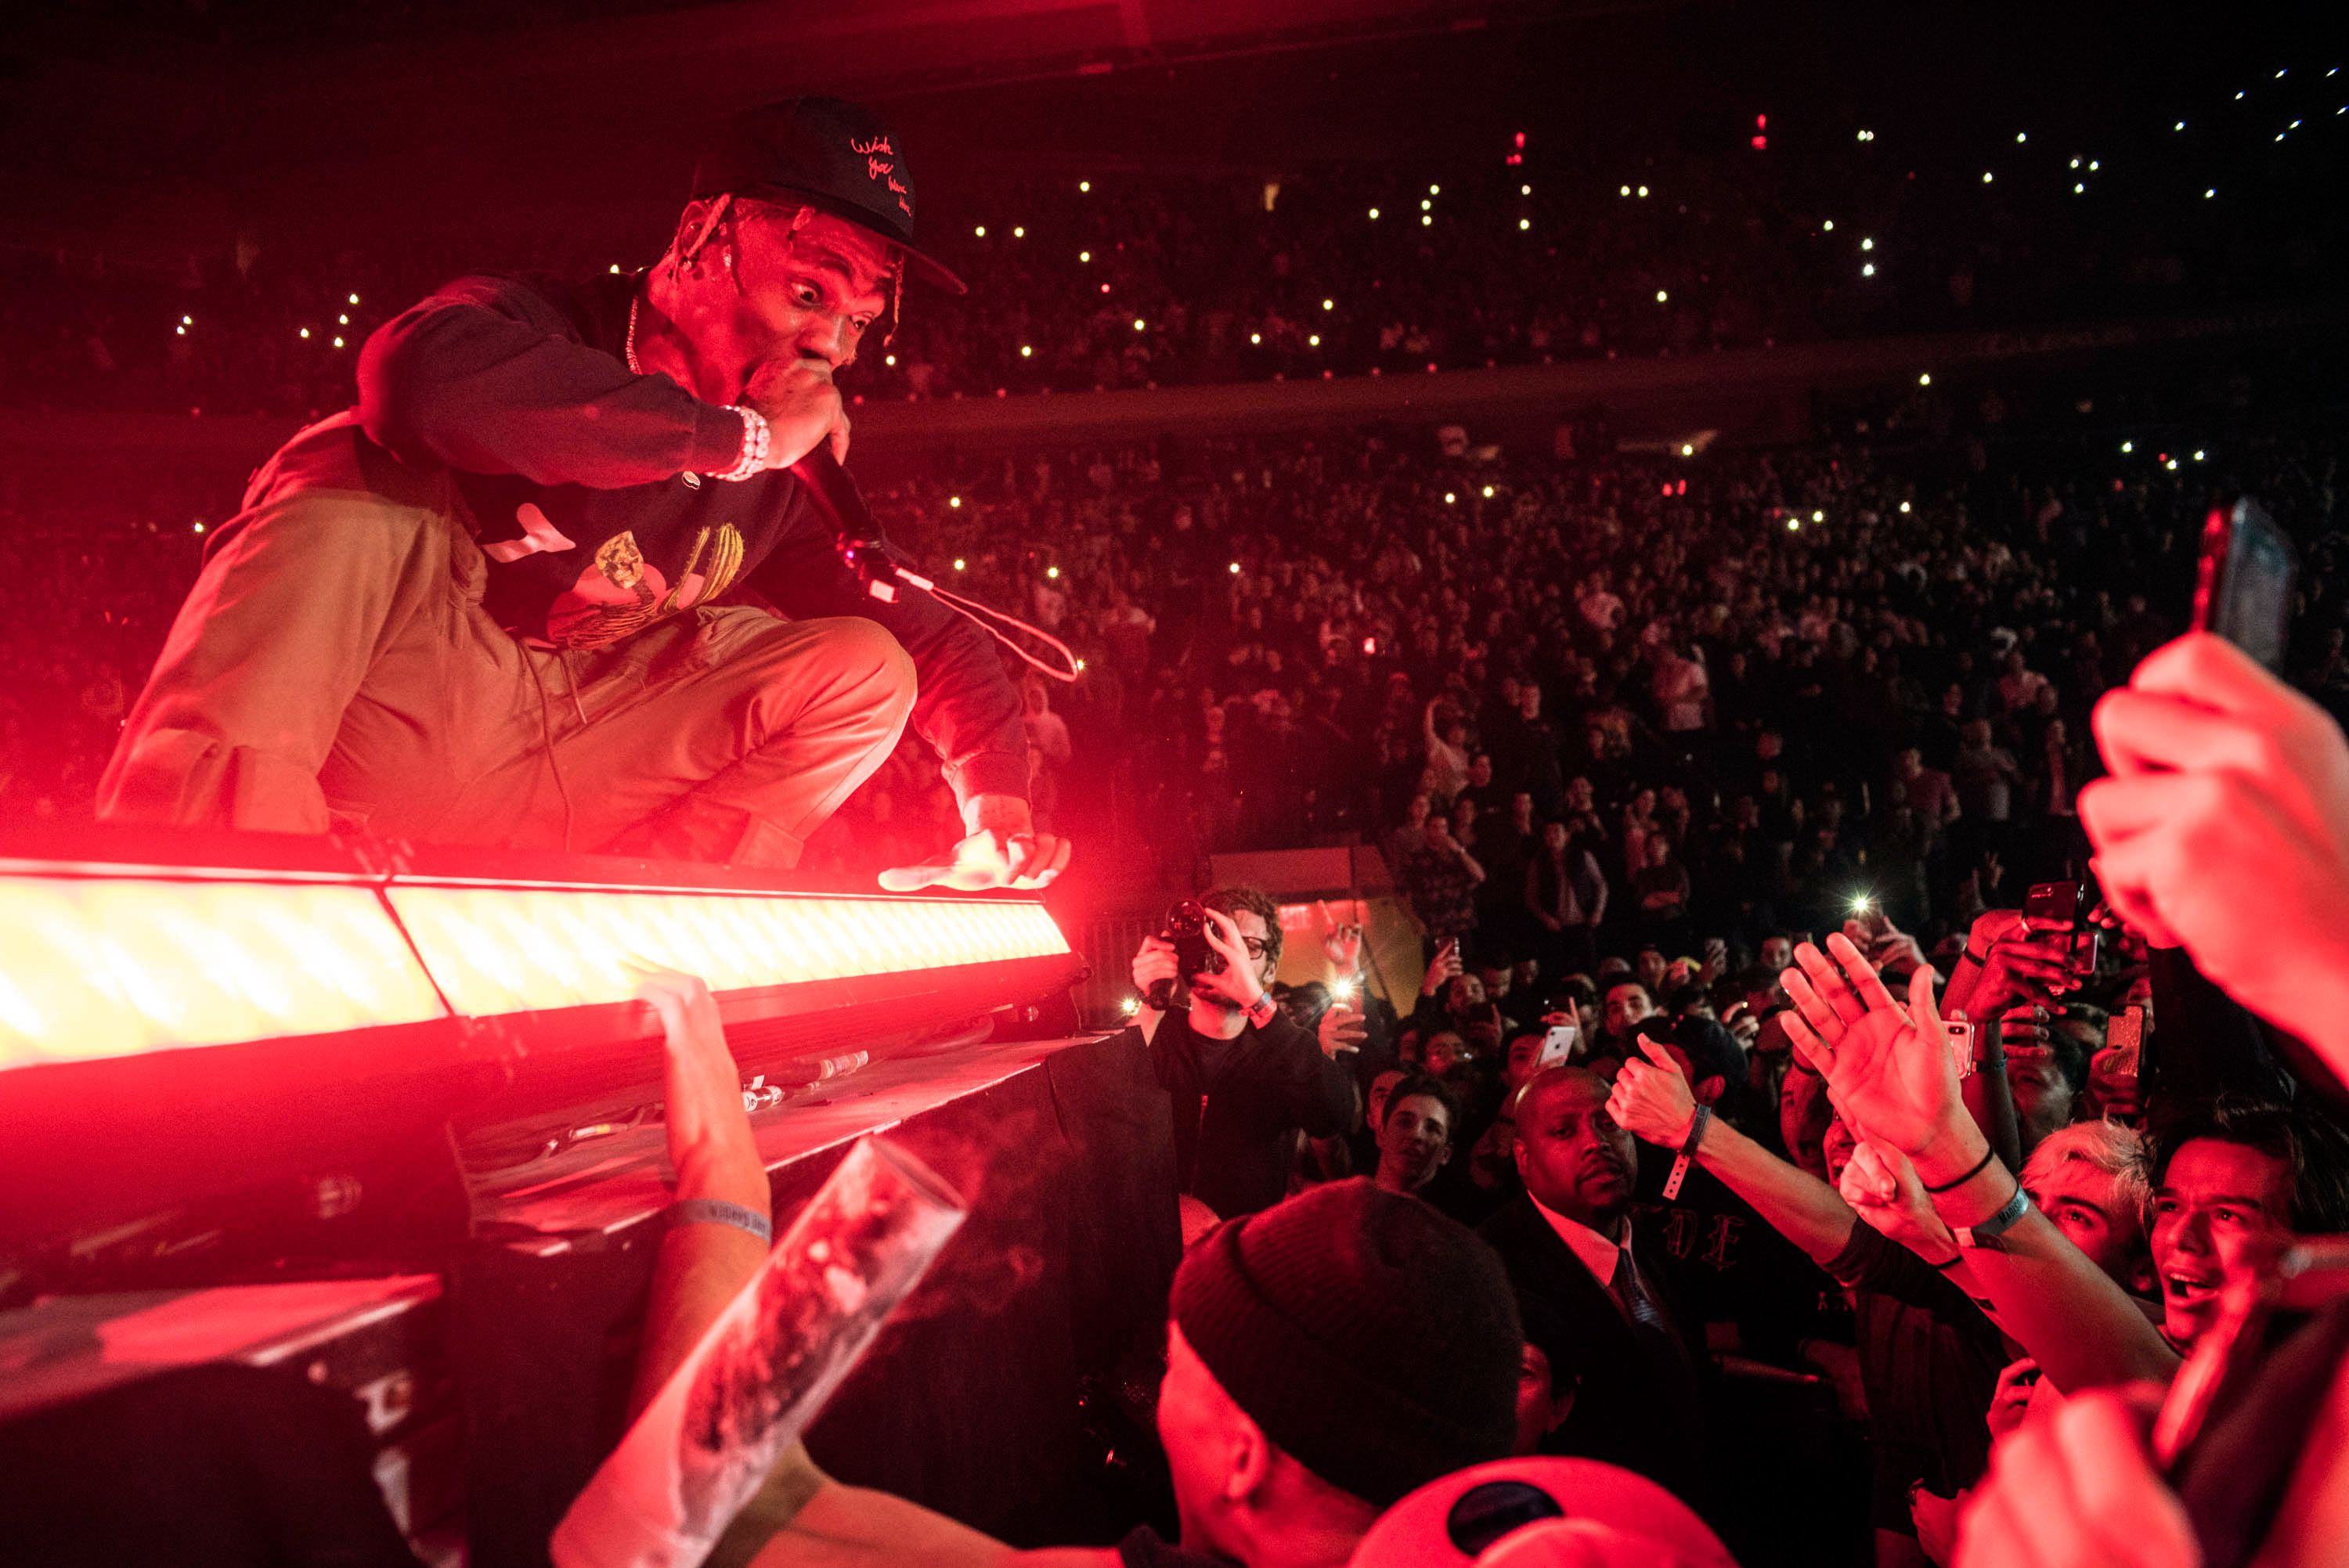 174e8973cfdc Travis Scott's 'Astroworld' Tour Is the Greatest Show on Earth | e ...